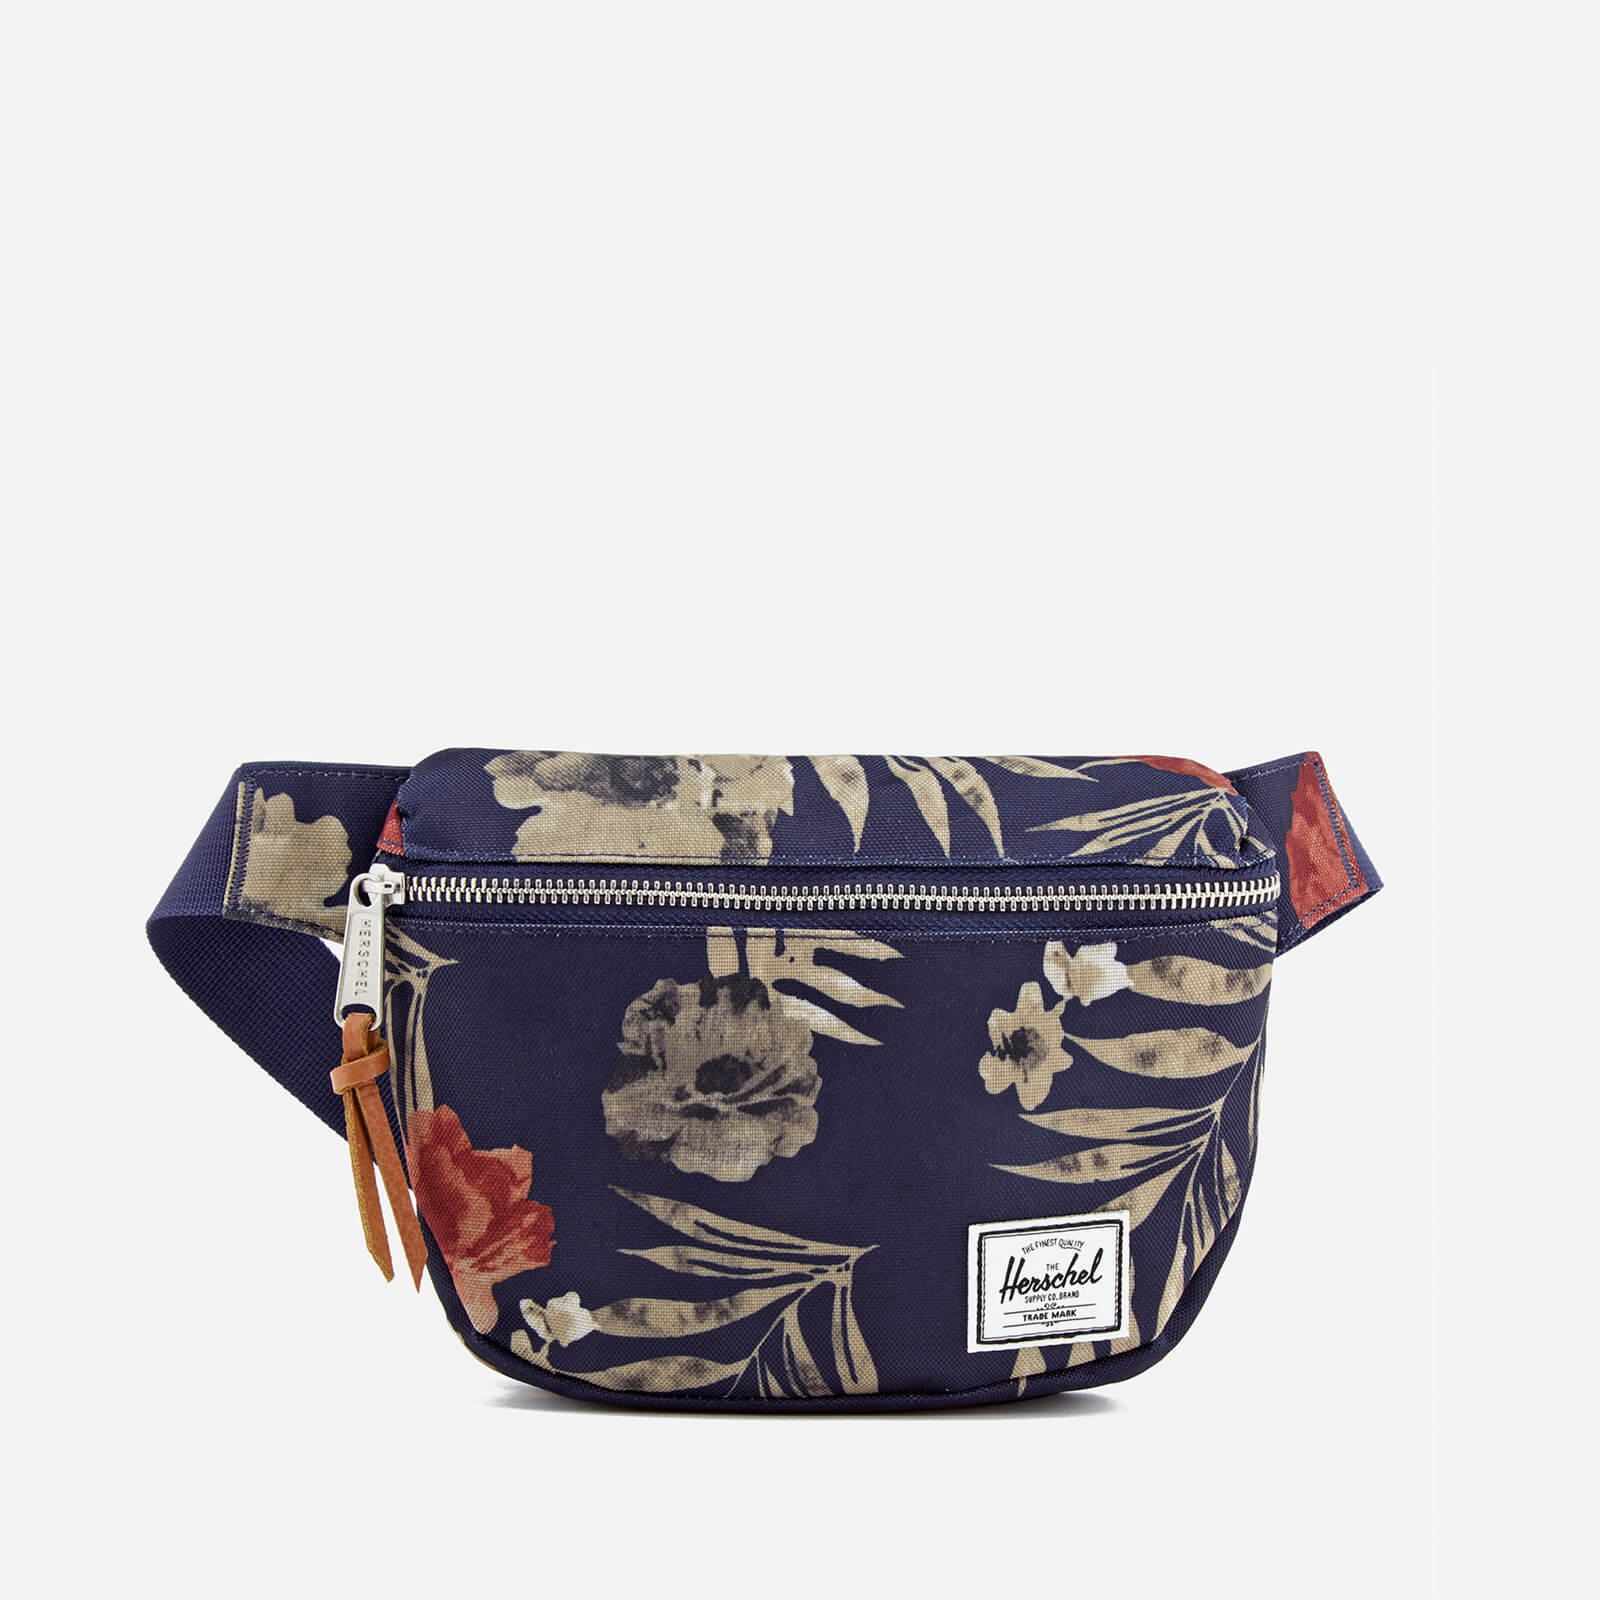 1df5ba44f53 Herschel Supply Co. Fifteen Hip Pack - Peacoat Floria - Free UK Delivery  over £50